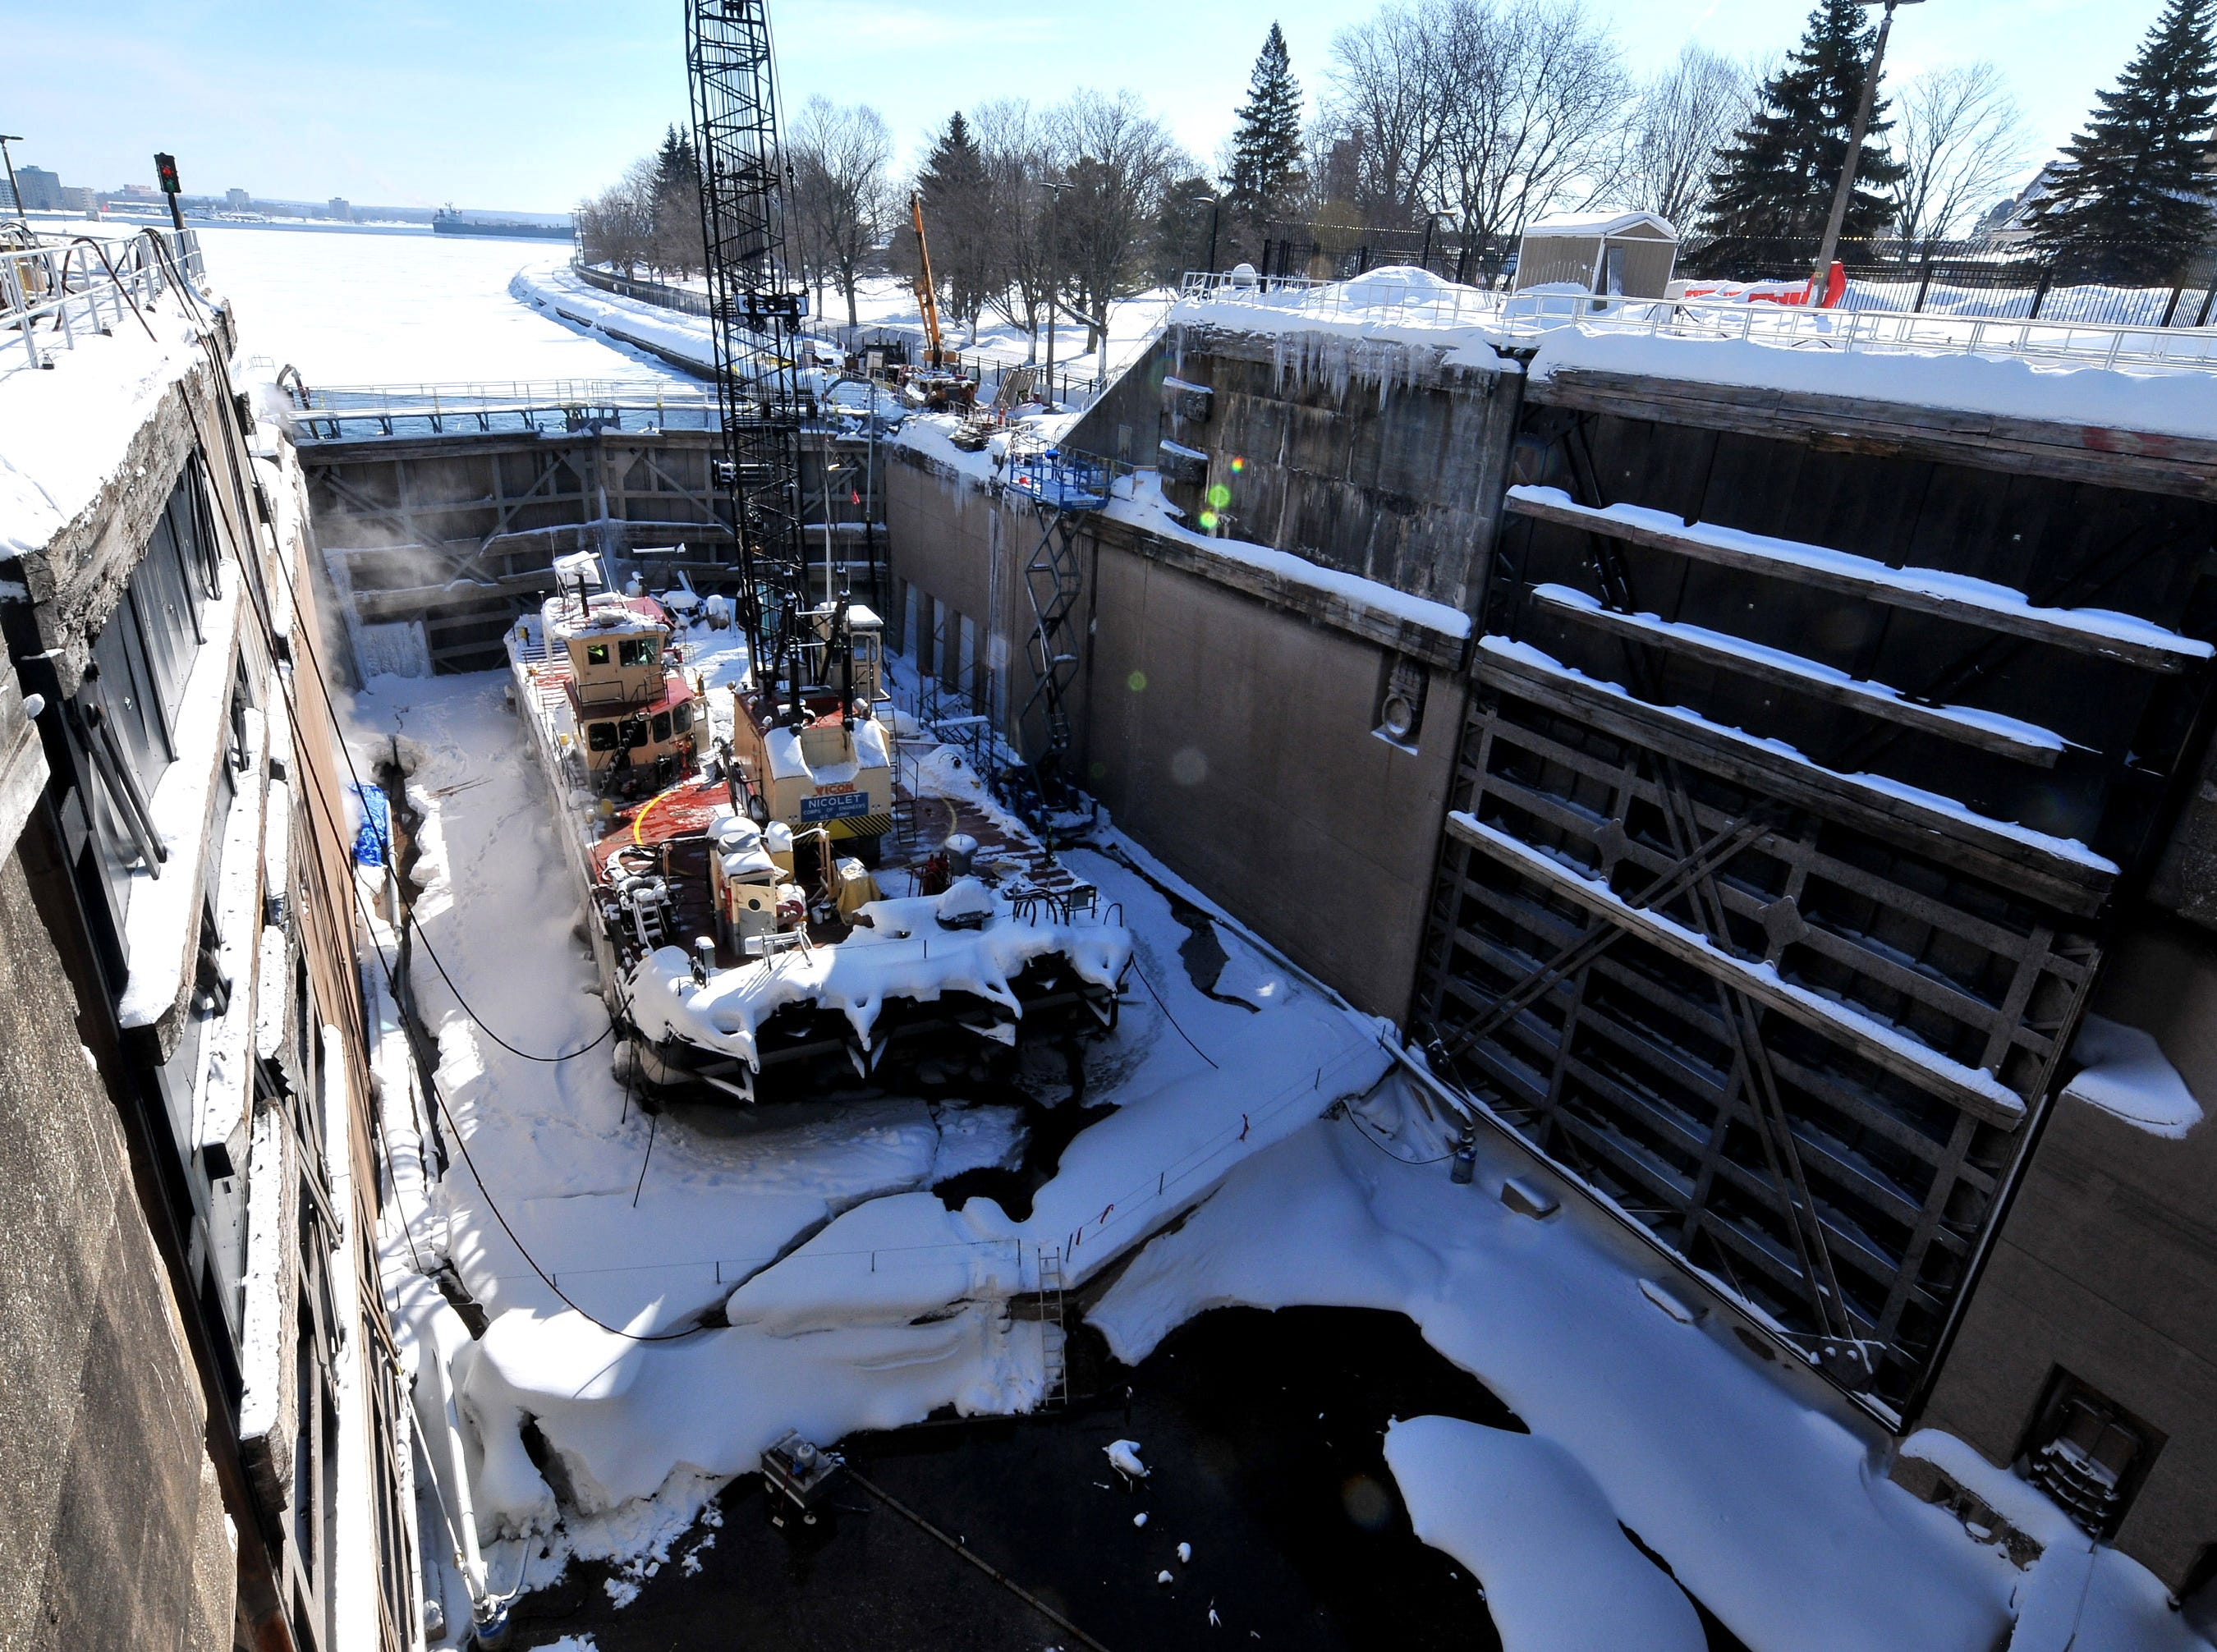 A winter maintenance work barge sits in the bottom of the MacArthur Lock Tuesday, March 12, 2019 in Sault Ste. Marie, Mich. A crane and other equipment were used for maintenance and repair over a 10-week shutdown of the facility. When water is added to the lock, the barge will be floated out to allow shipping to pass through.